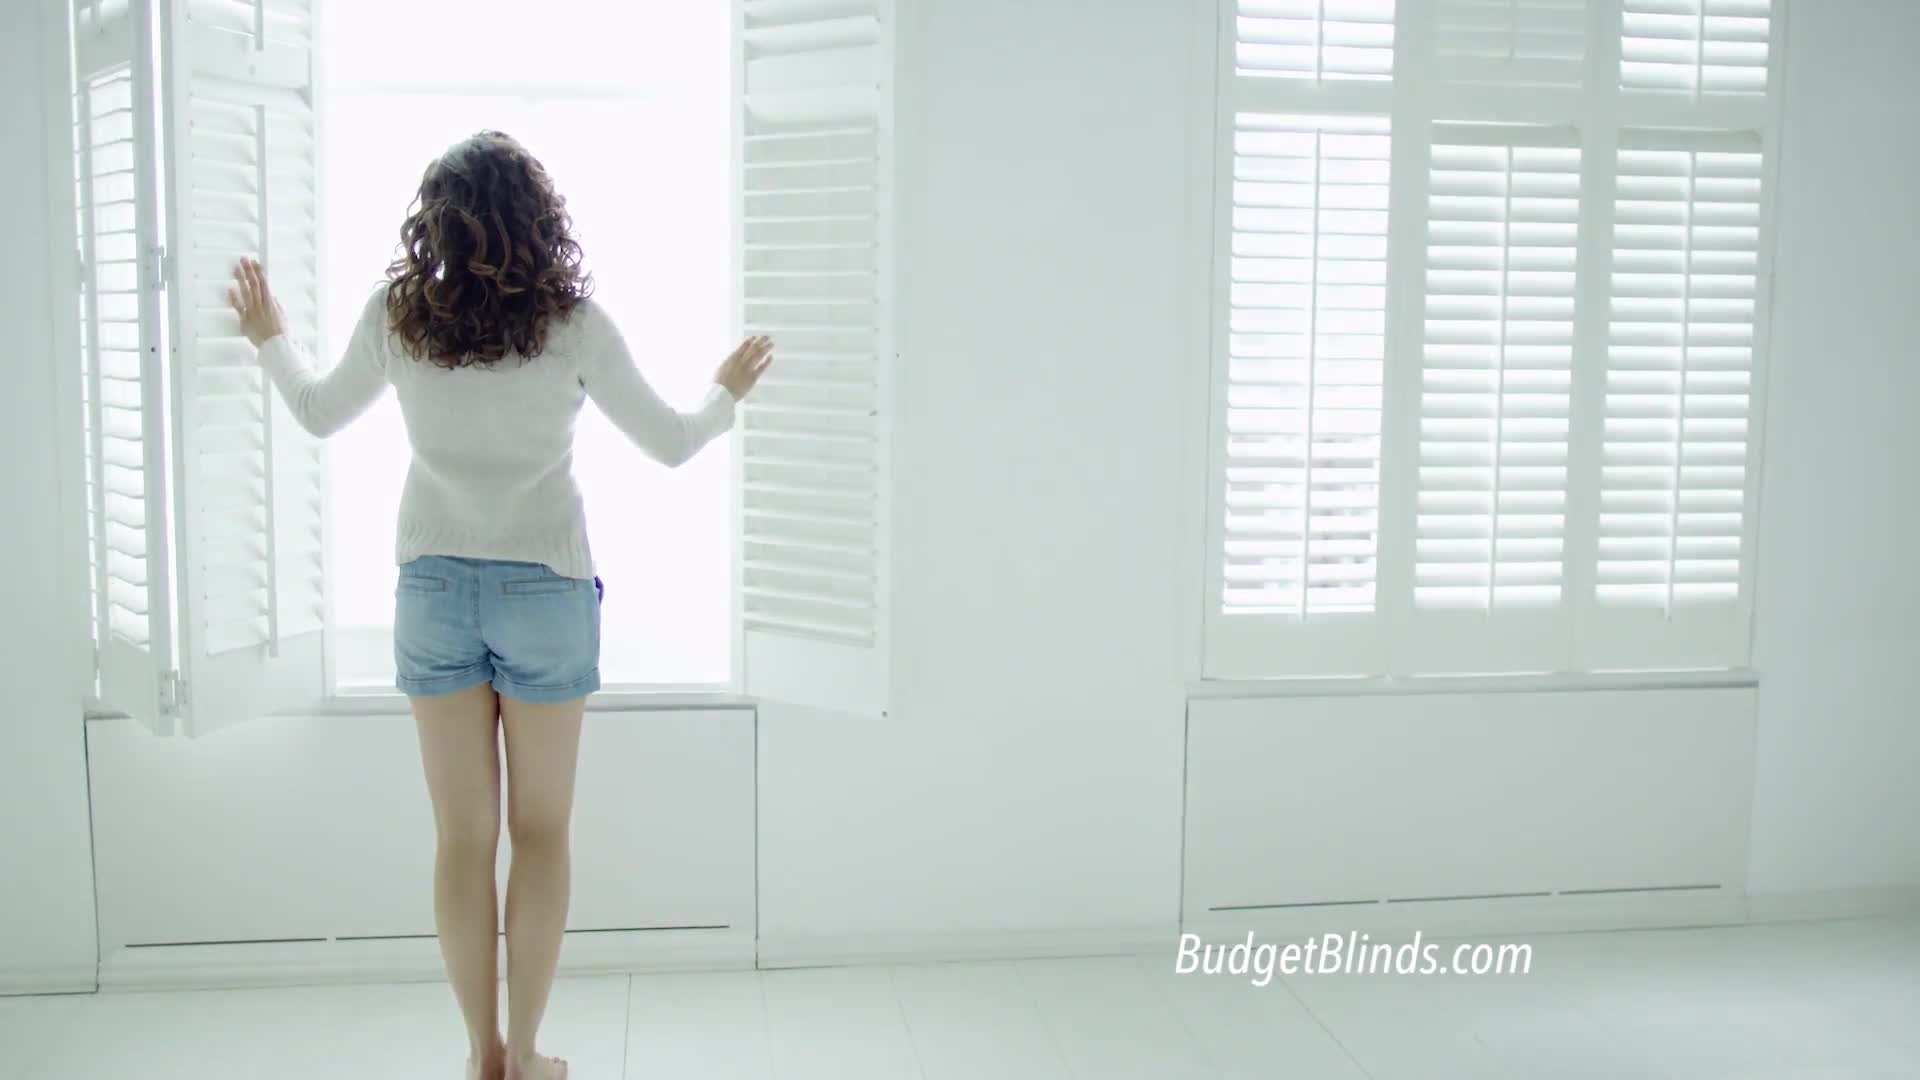 Budget Blinds - Window Shade & Blind Stores - 587-802-4981